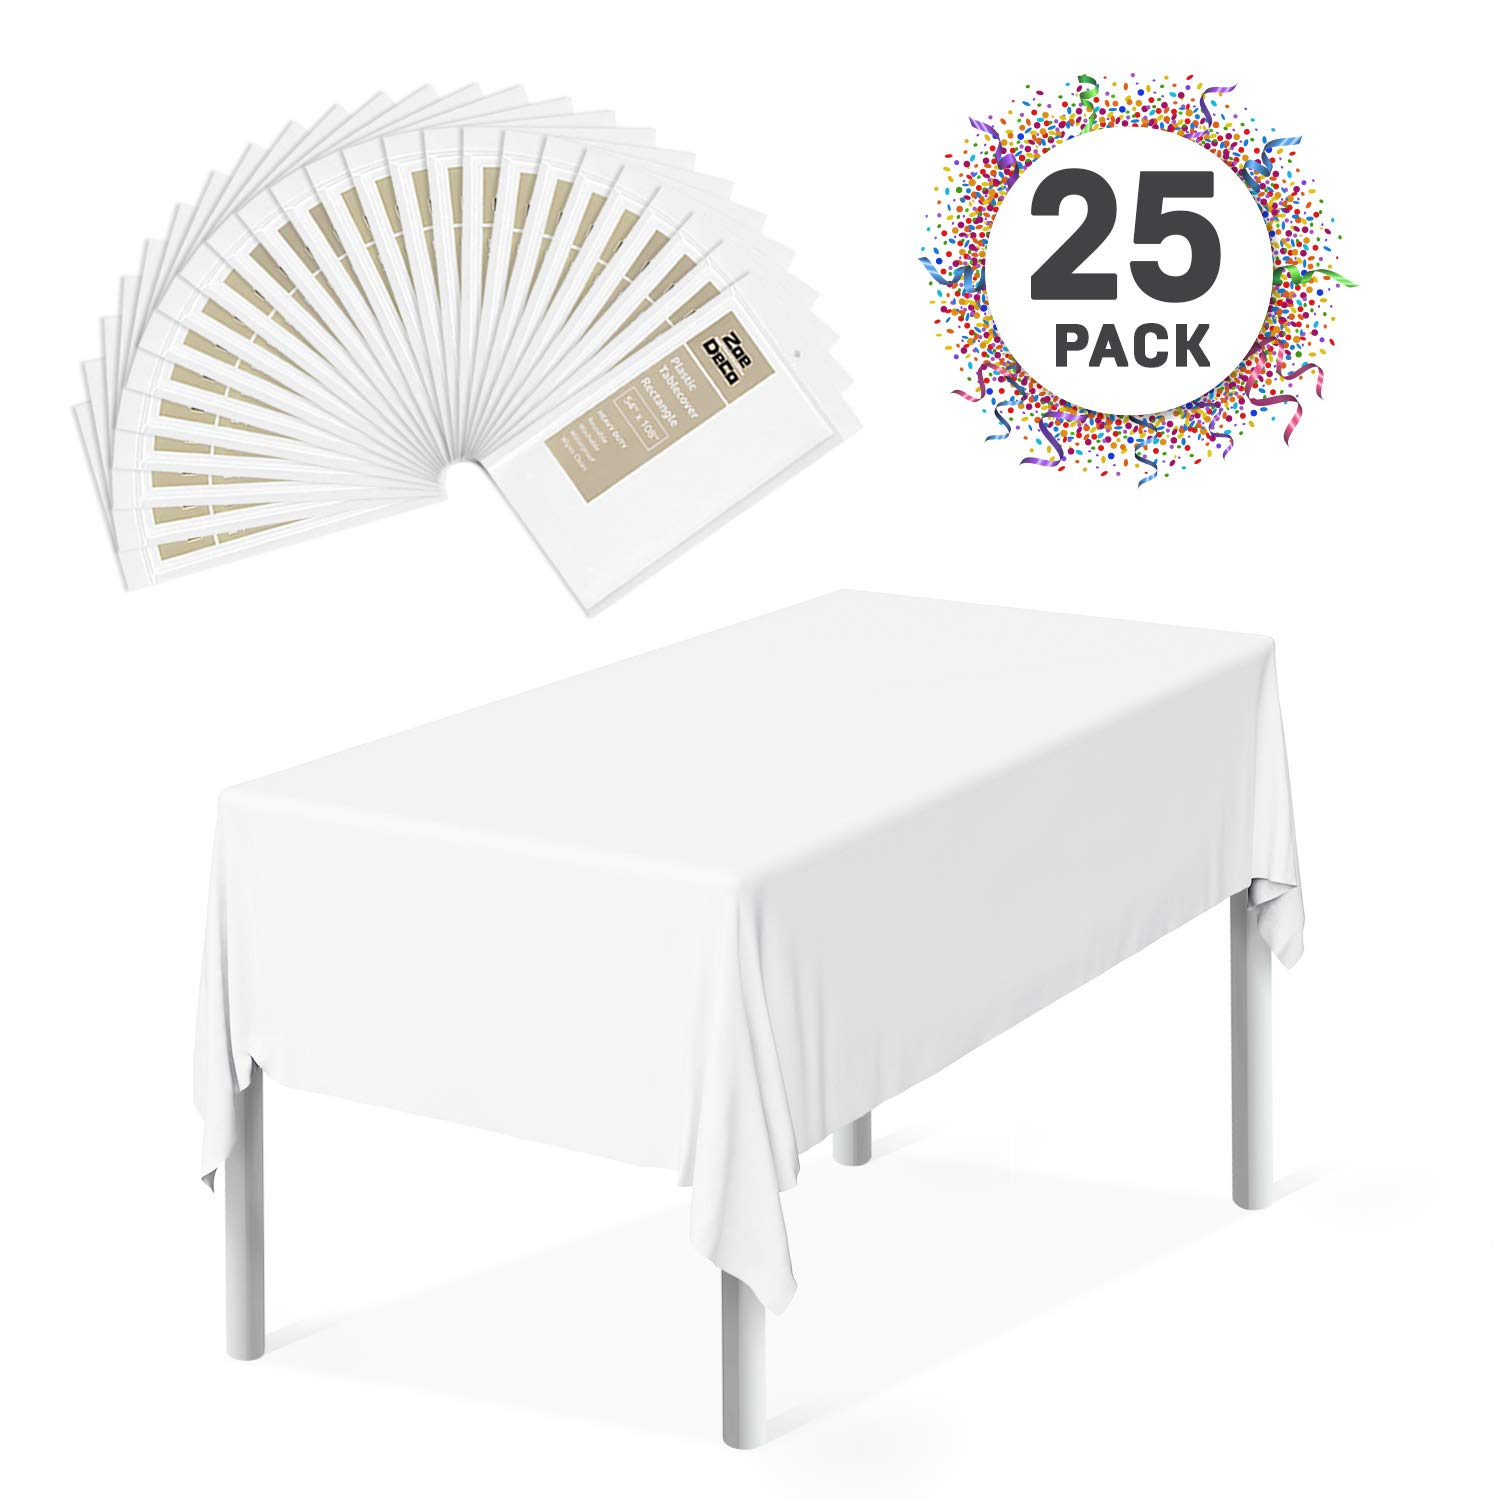 Zoe Deco Plastic Tablecloth (25 Pack, Rectangular 54'' x 108'', White), Disposable Table Covers for Parties, Graduations, and Picnics by Zoe Deco